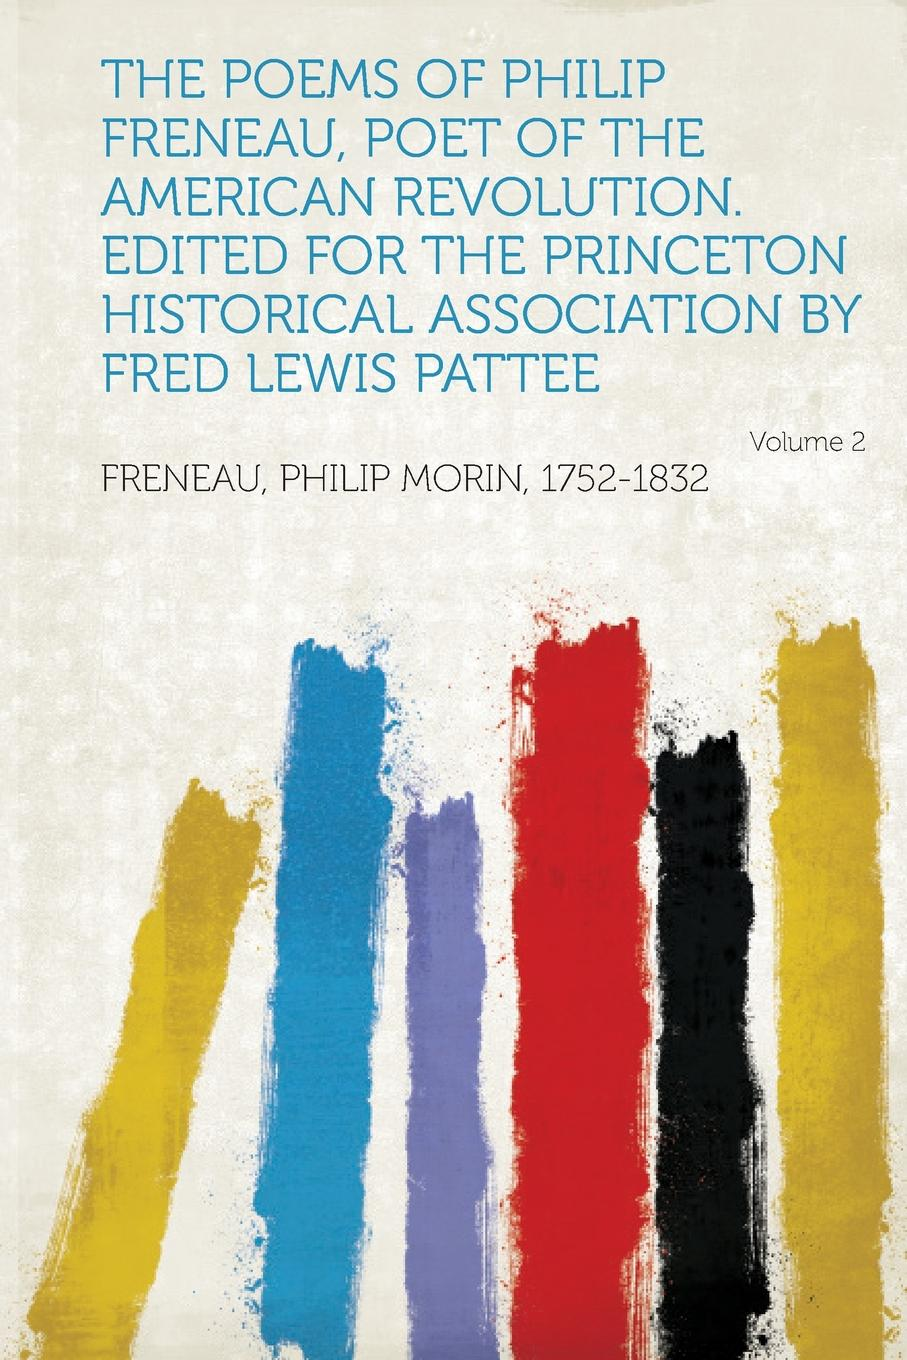 The Poems of Philip Freneau, Poet of the American Revolution. Edited for the Princeton Historical Association by Fred Lewis Pattee Volume 2 freneau philip morin the poems of philip freneau poet of the american revolution volume 1 of 3